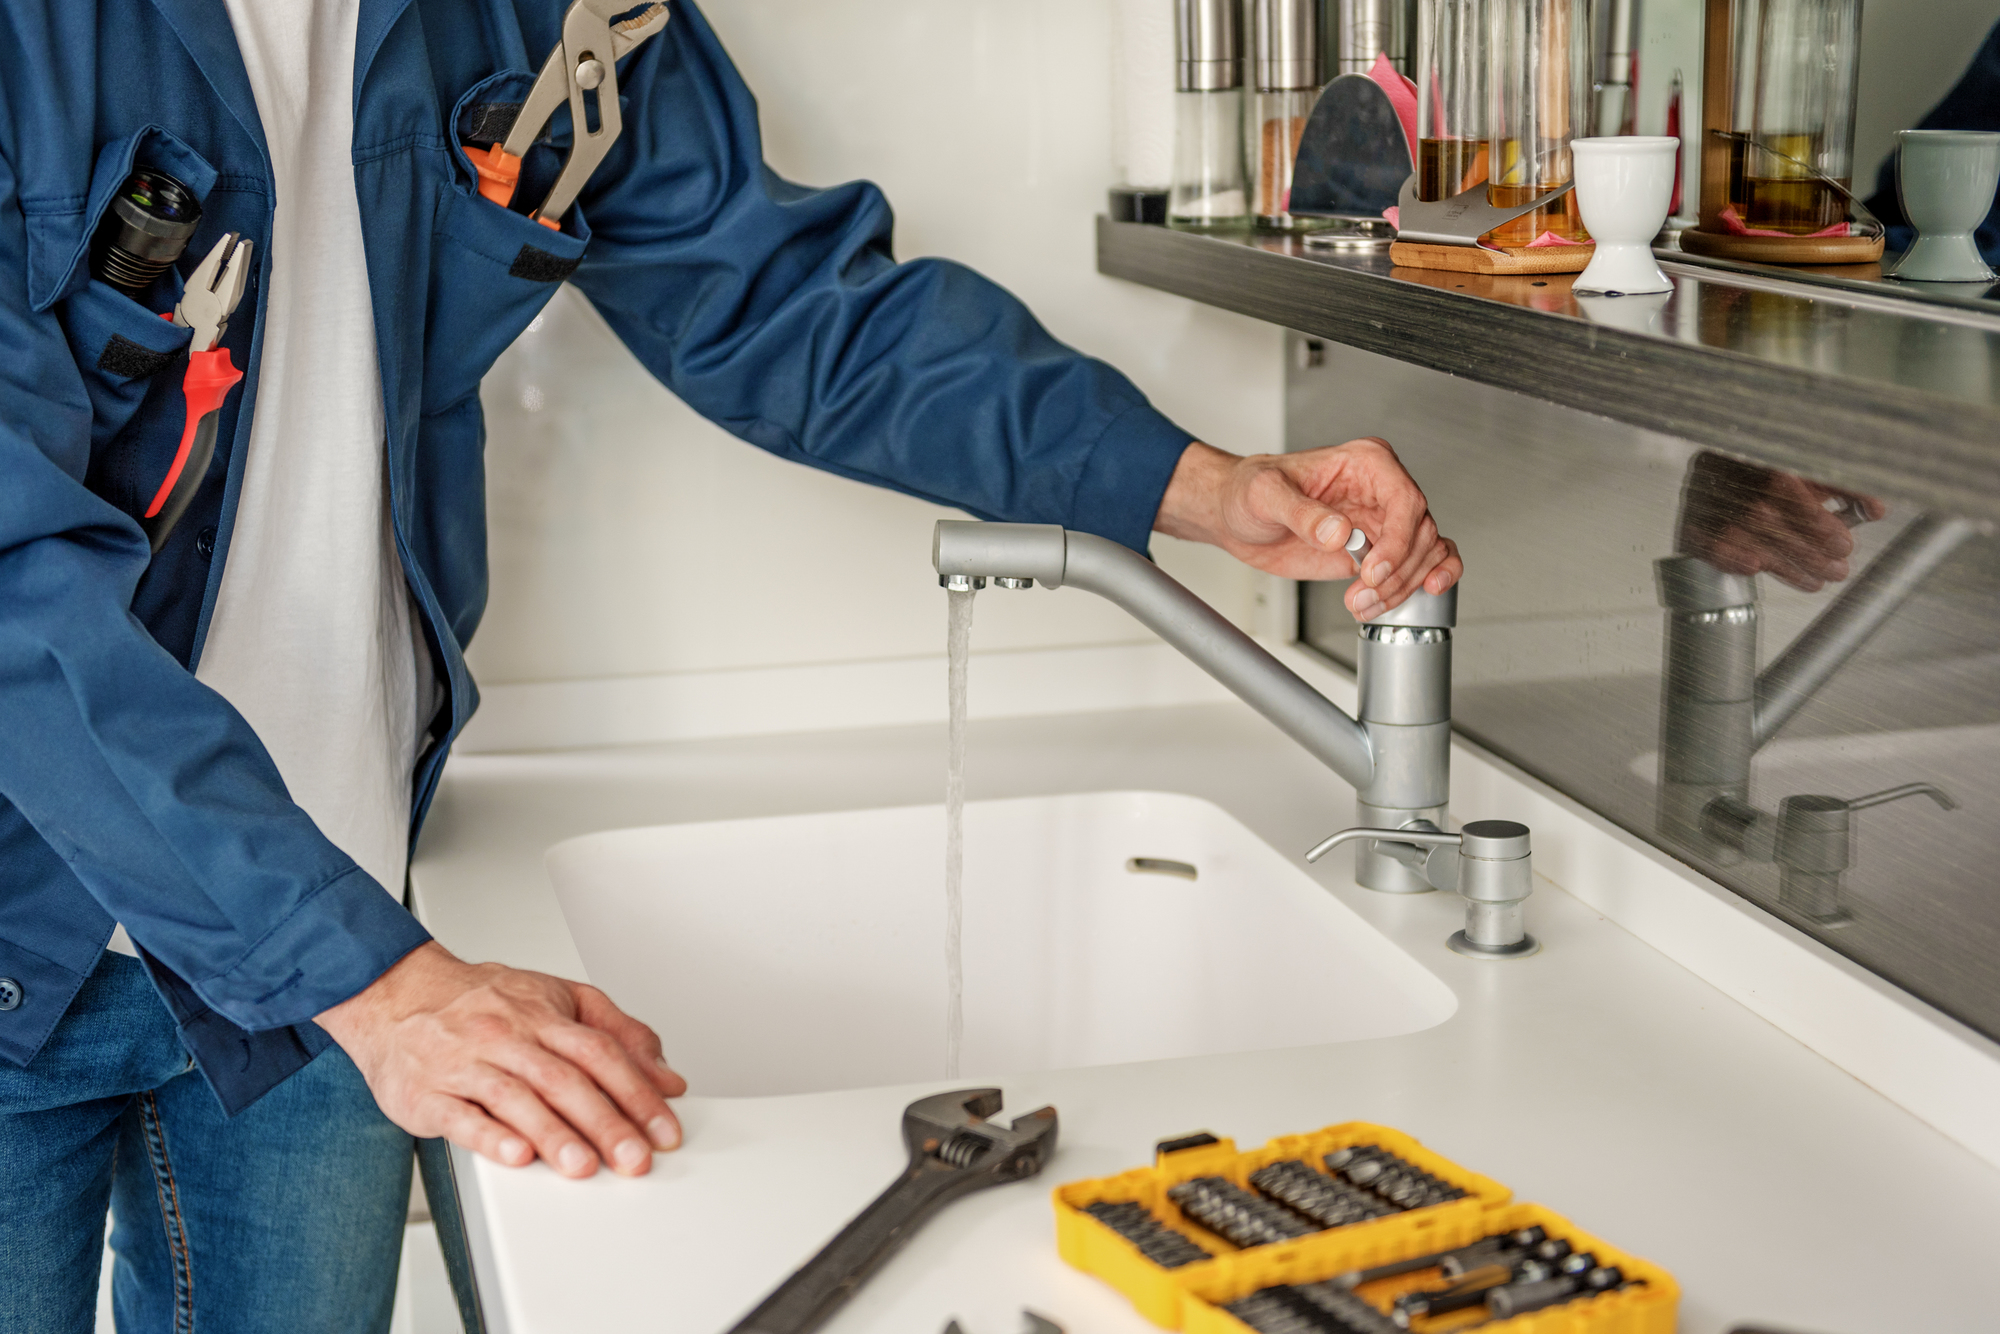 Handyman is opening water tap and checking result. Focus on running liquid. Close up of arms